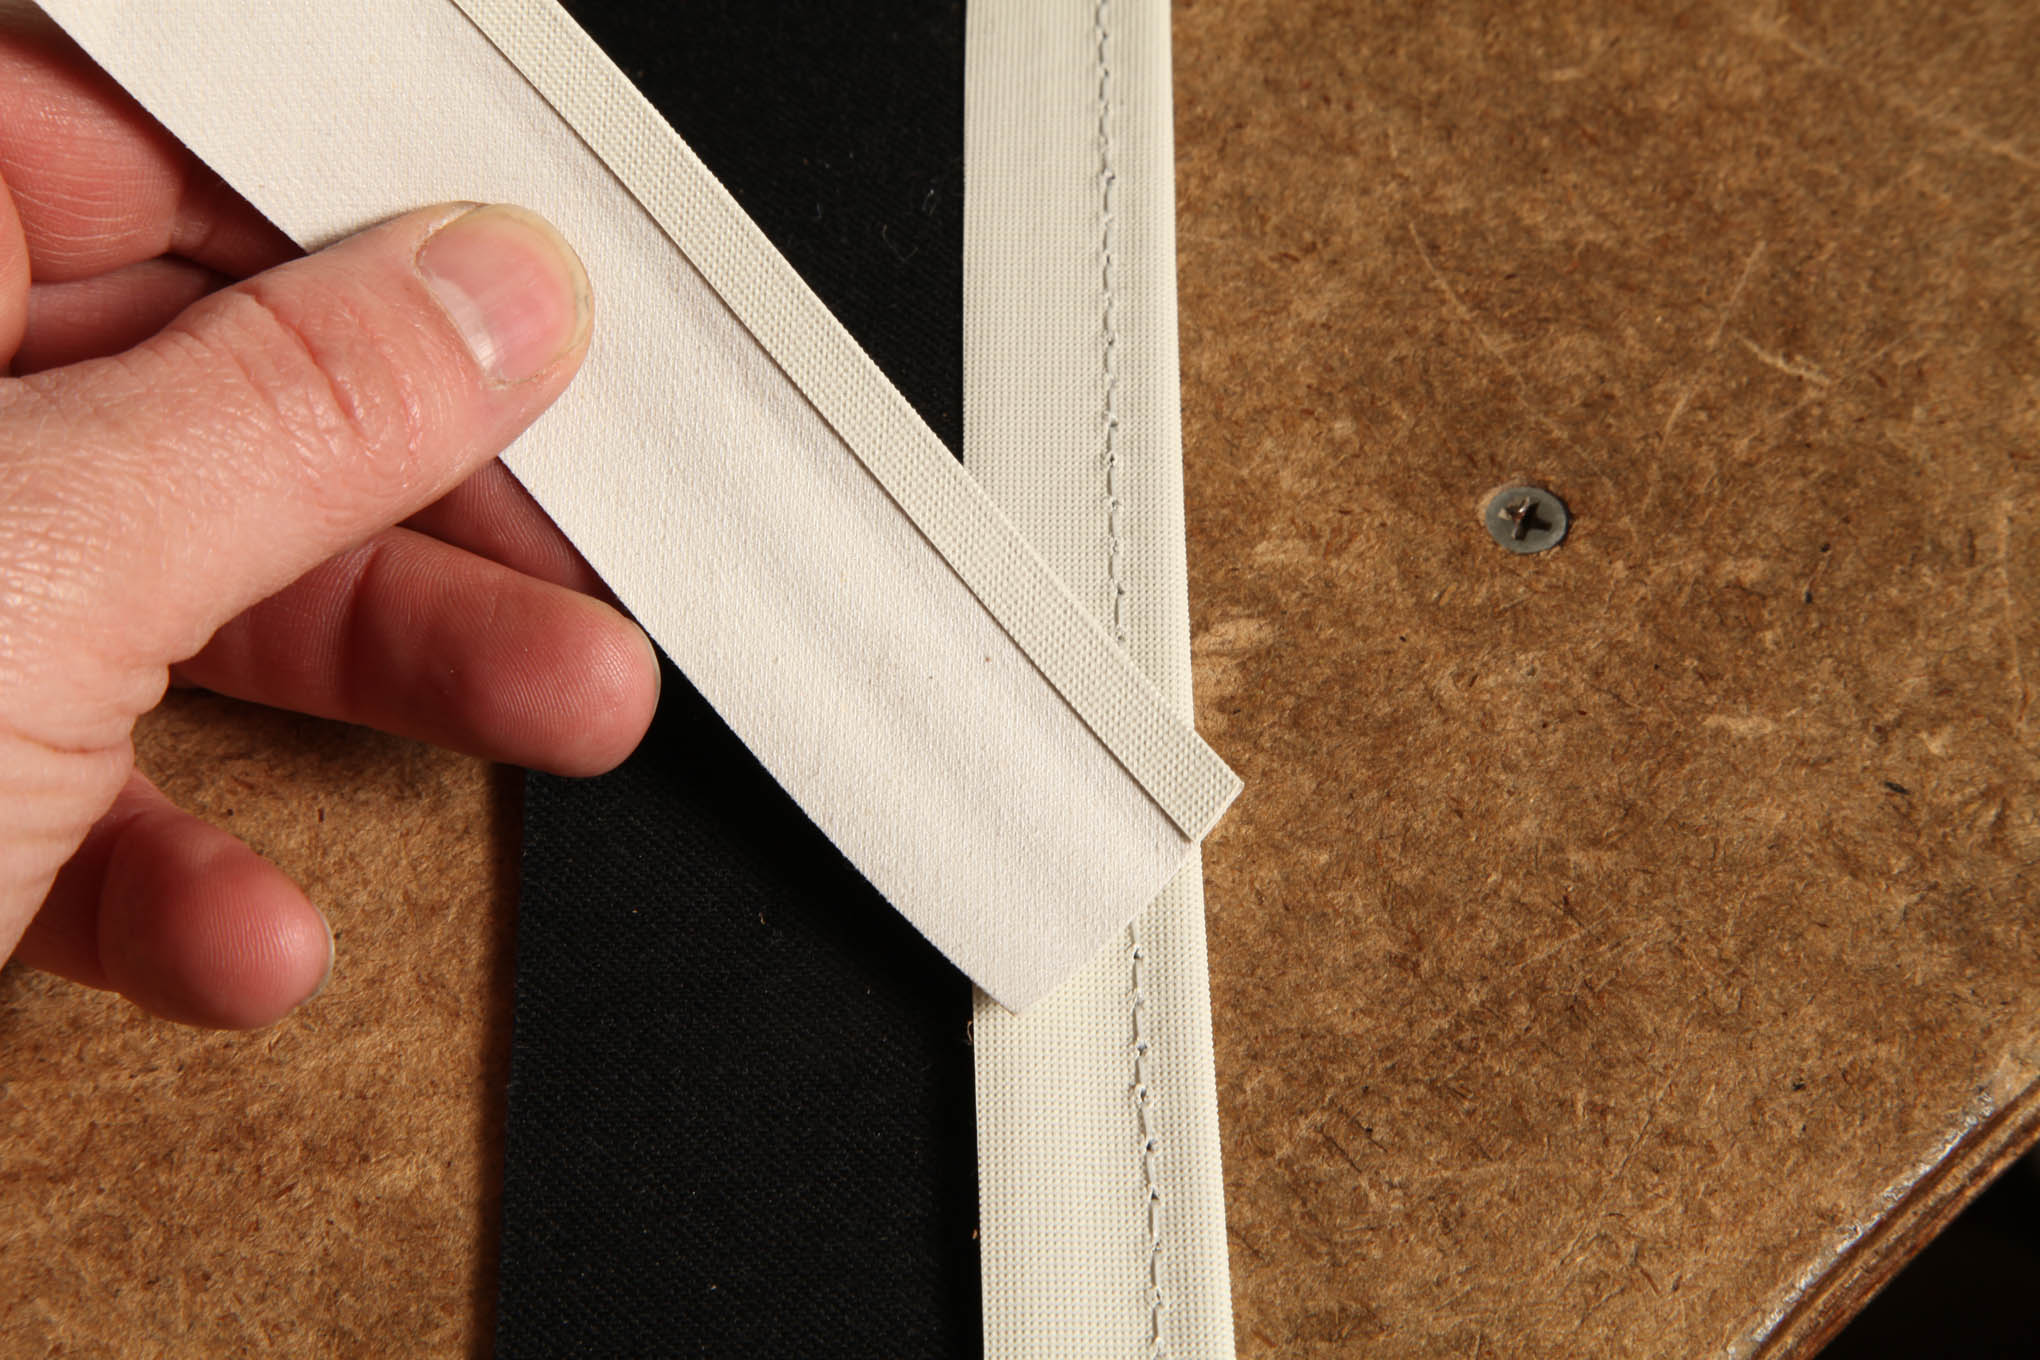 Reichlin finished the top and flap's edges with 1-1/4-inch one-edge turned binding strip. It simply wraps around the edge so the folded edge faces outward and then gets sewn along that edge. The black panel is the backside of the rear flap.